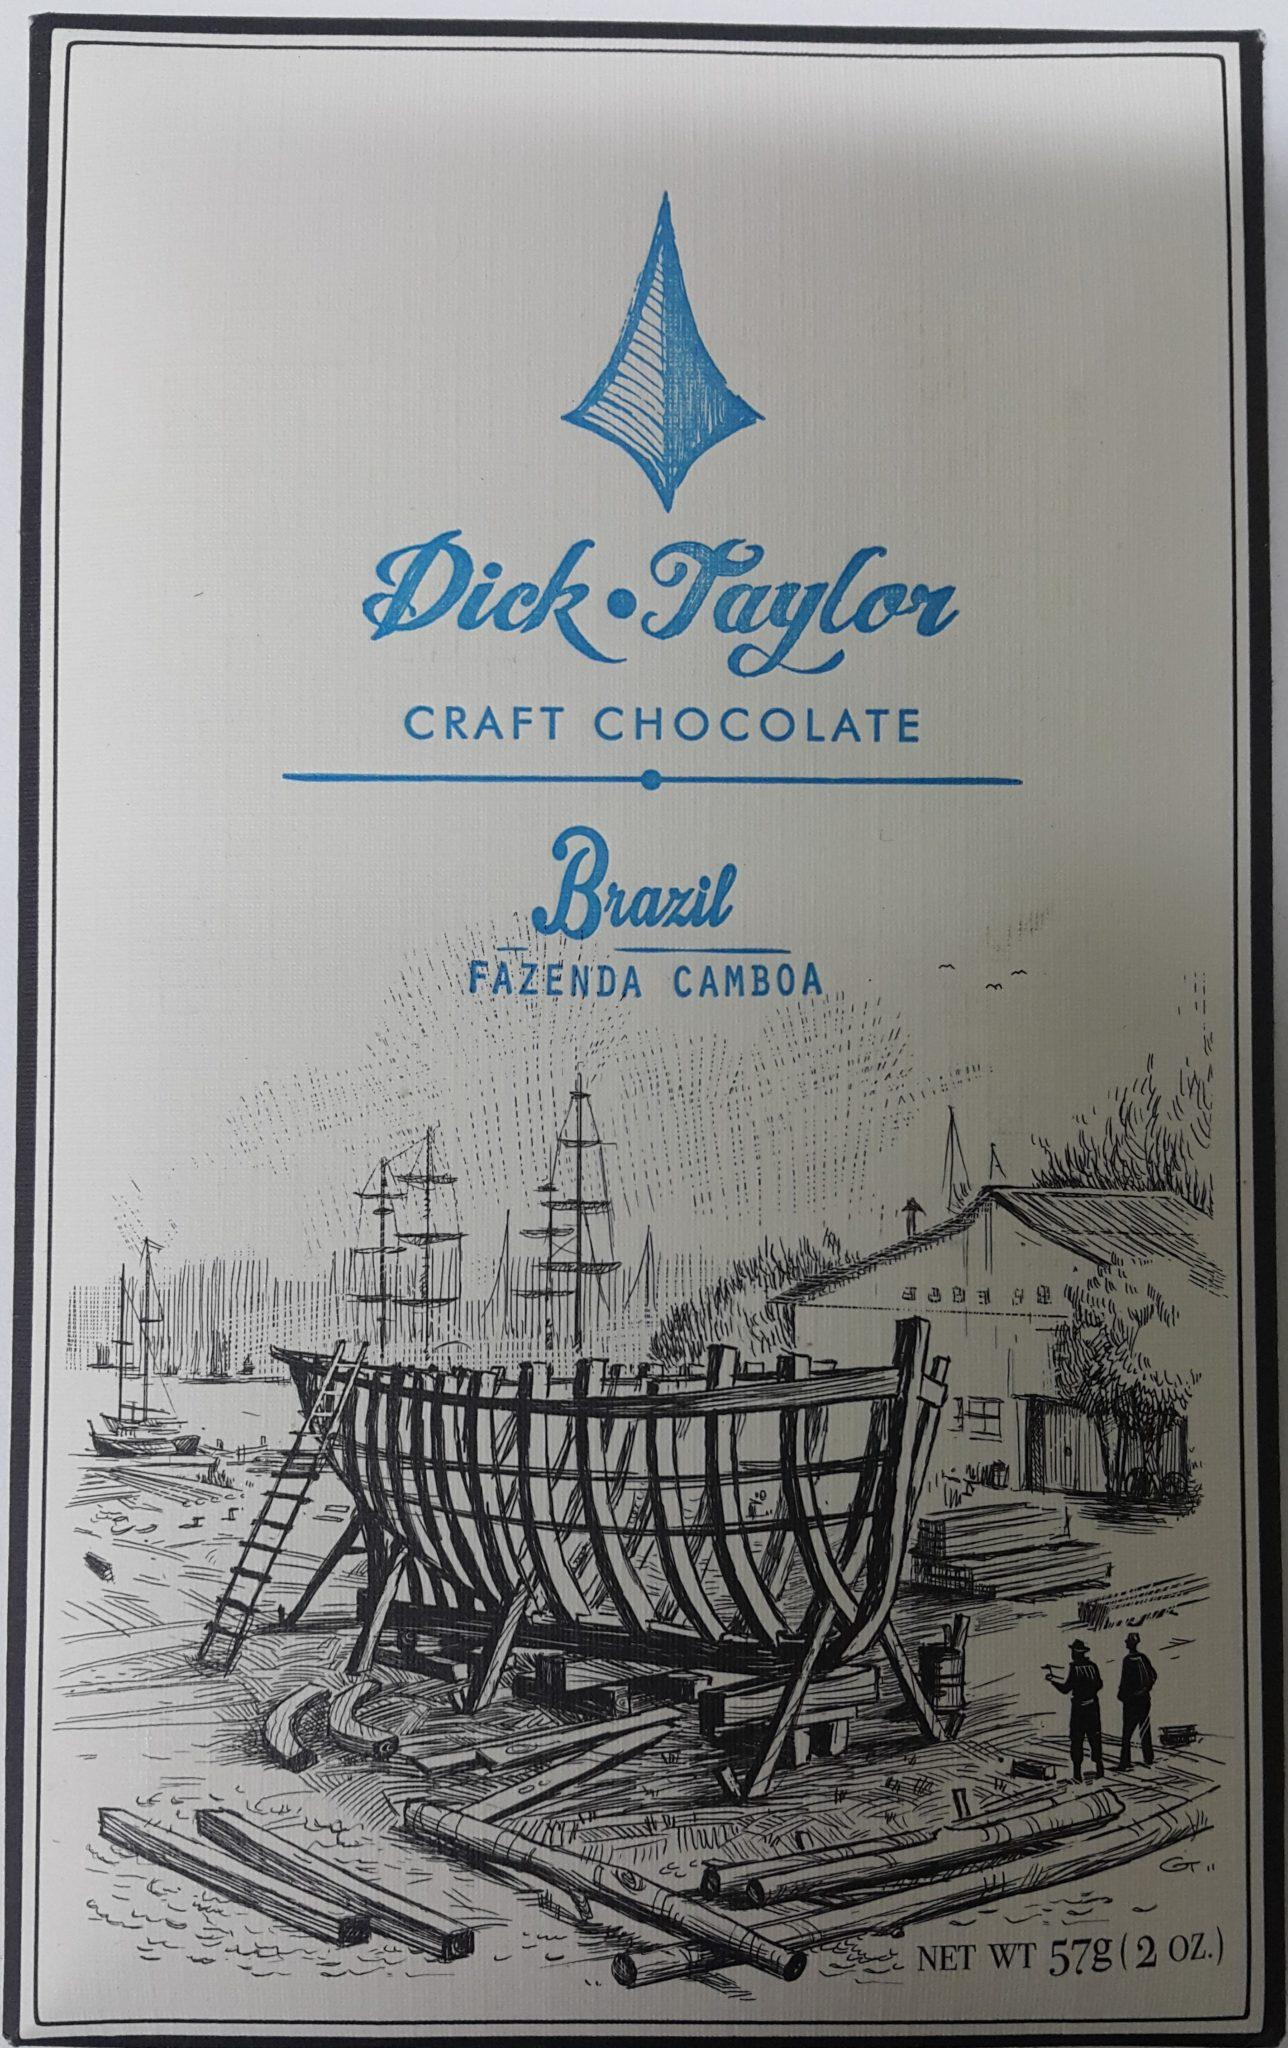 dick taylor brazil fazenda camboa 75% front of bar packaging